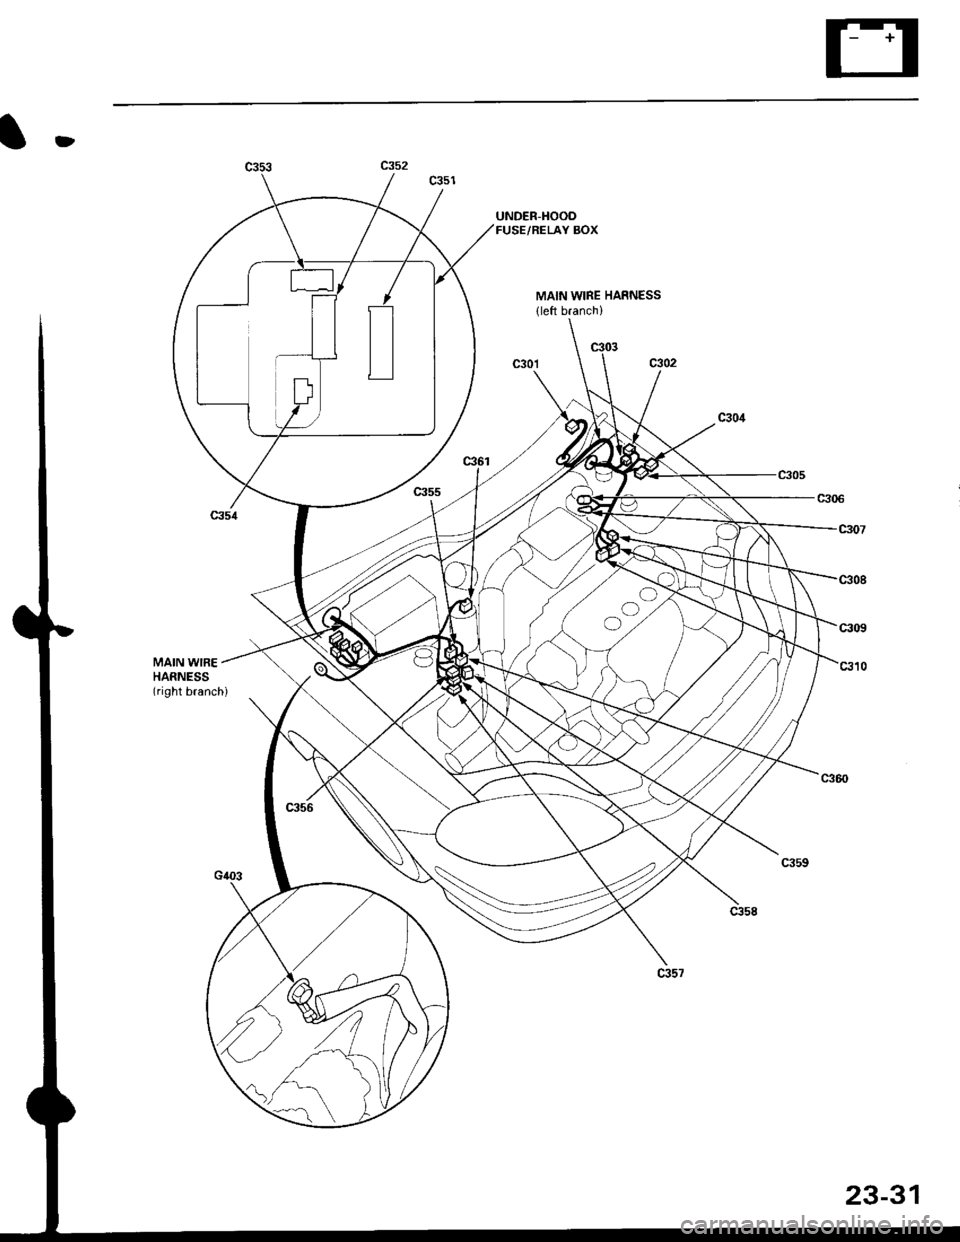 h22a4 engine harness diagram  h22a4  get free image about